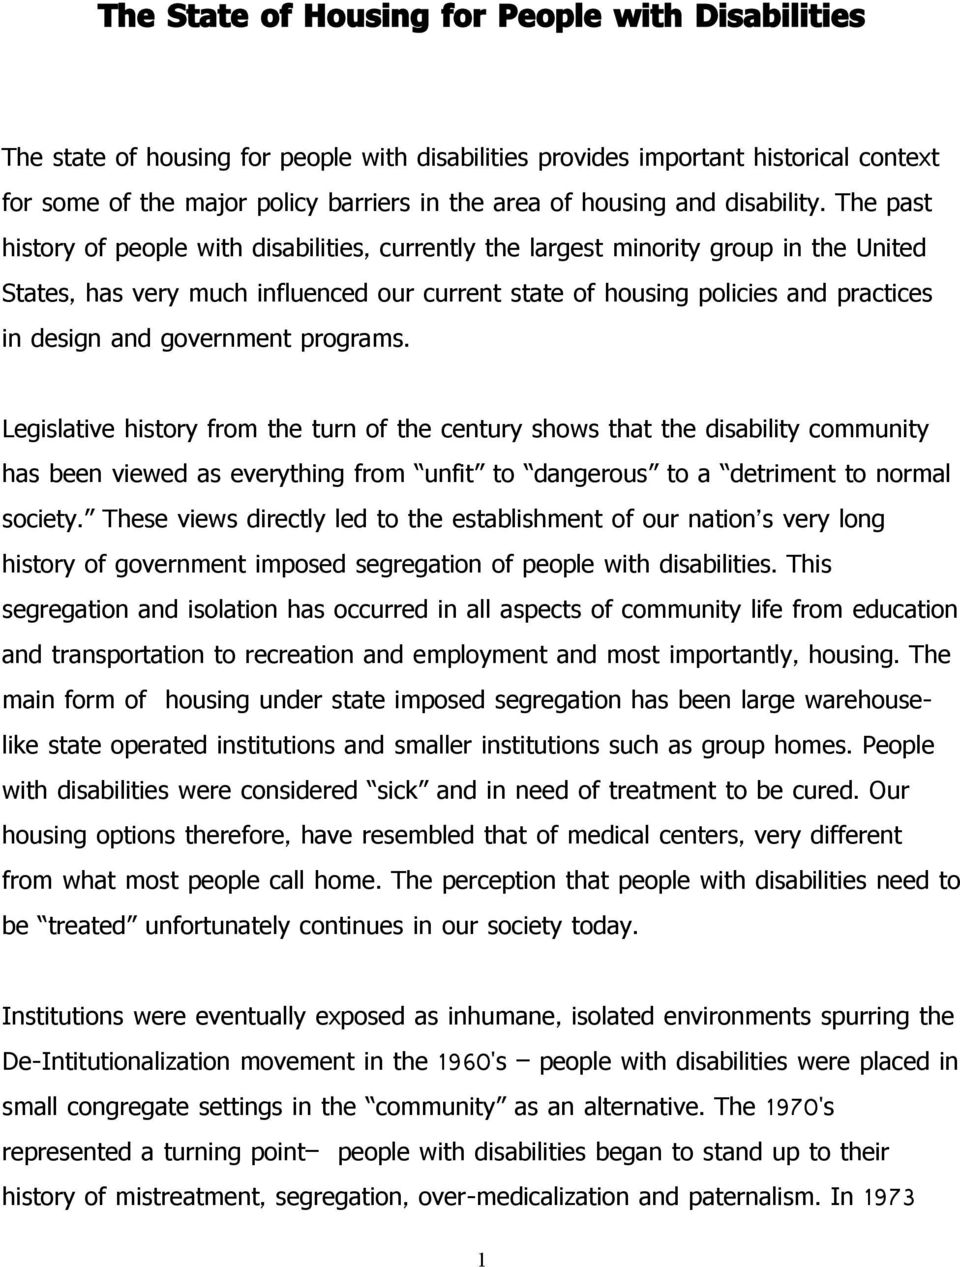 The past history of people with disabilities, currently the largest minority group in the United States, has very much influenced our current state of housing policies and practices in design and